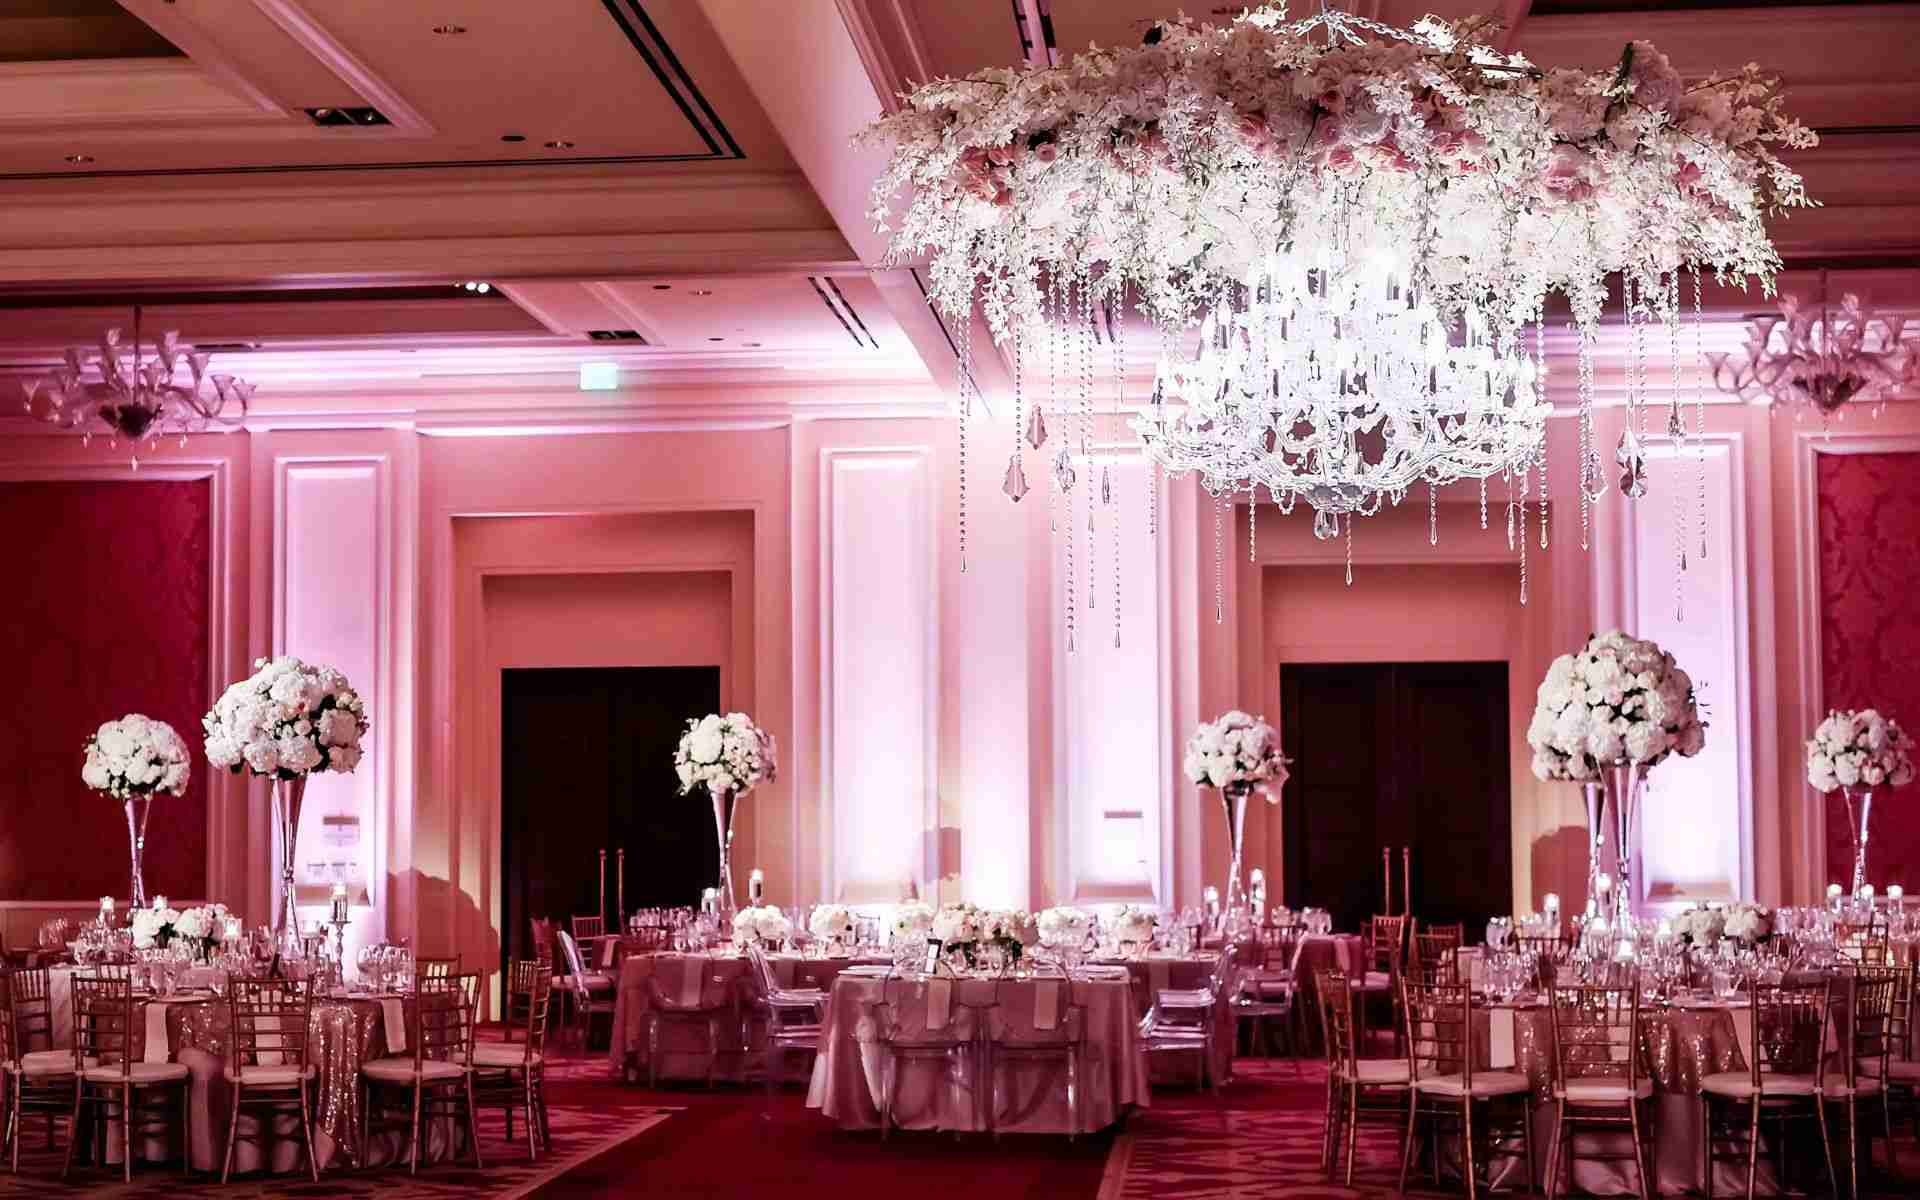 Wedding DJ Savannah GA_Uplighting Example_Pink